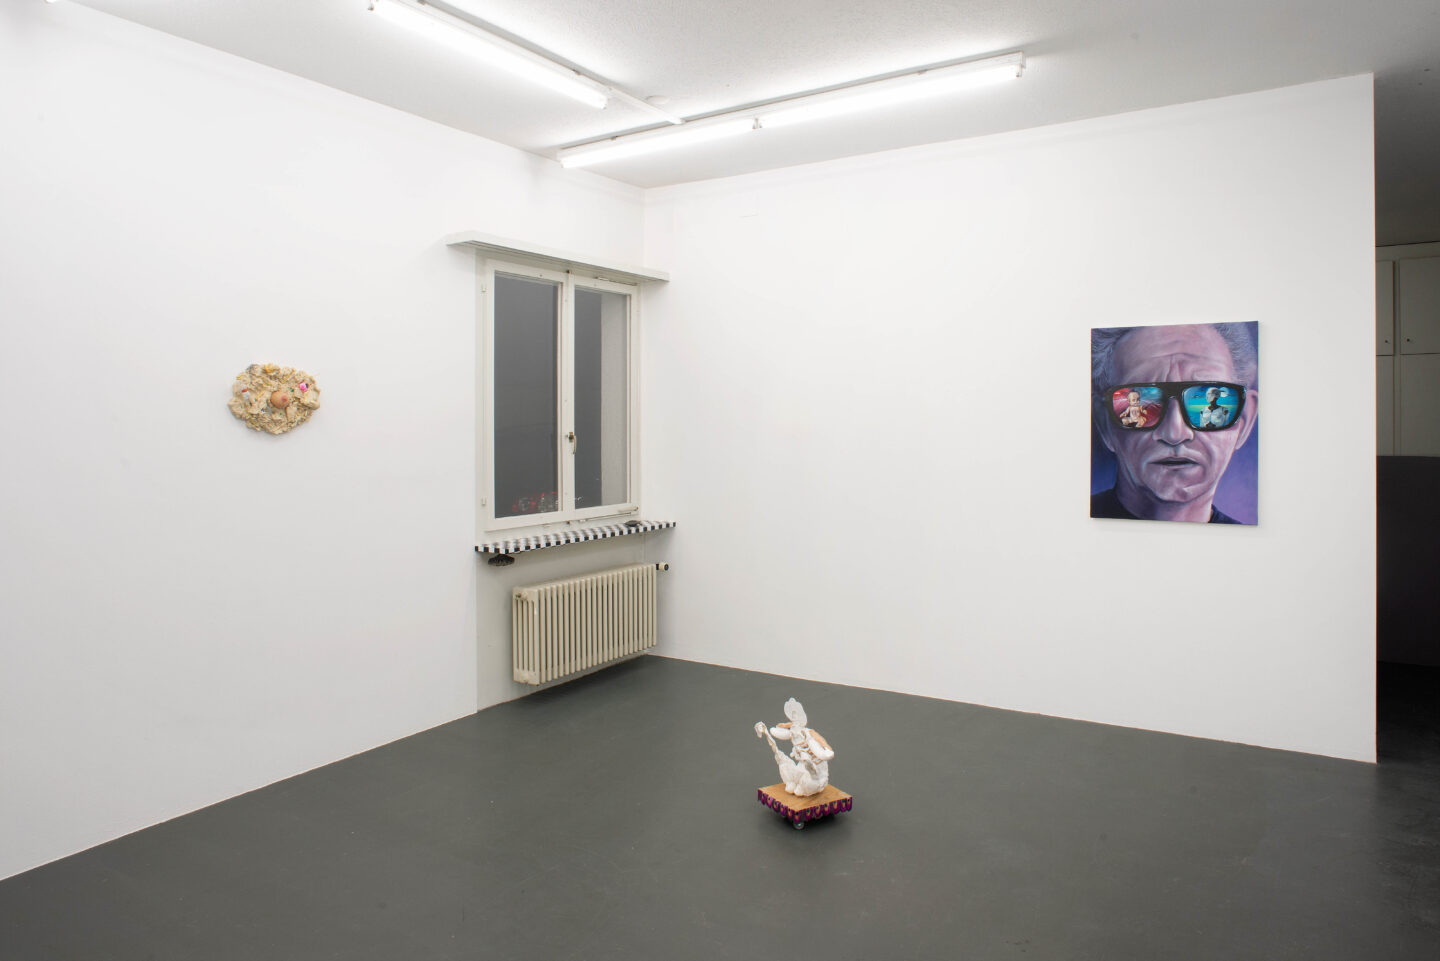 Exhibition View Groupshow «TGC – curated by XYZ Collective» at Weiss Falk, Basel, 2020 / Photo: Flavio Karrer / Courtesy: the artists and Weiss Falk